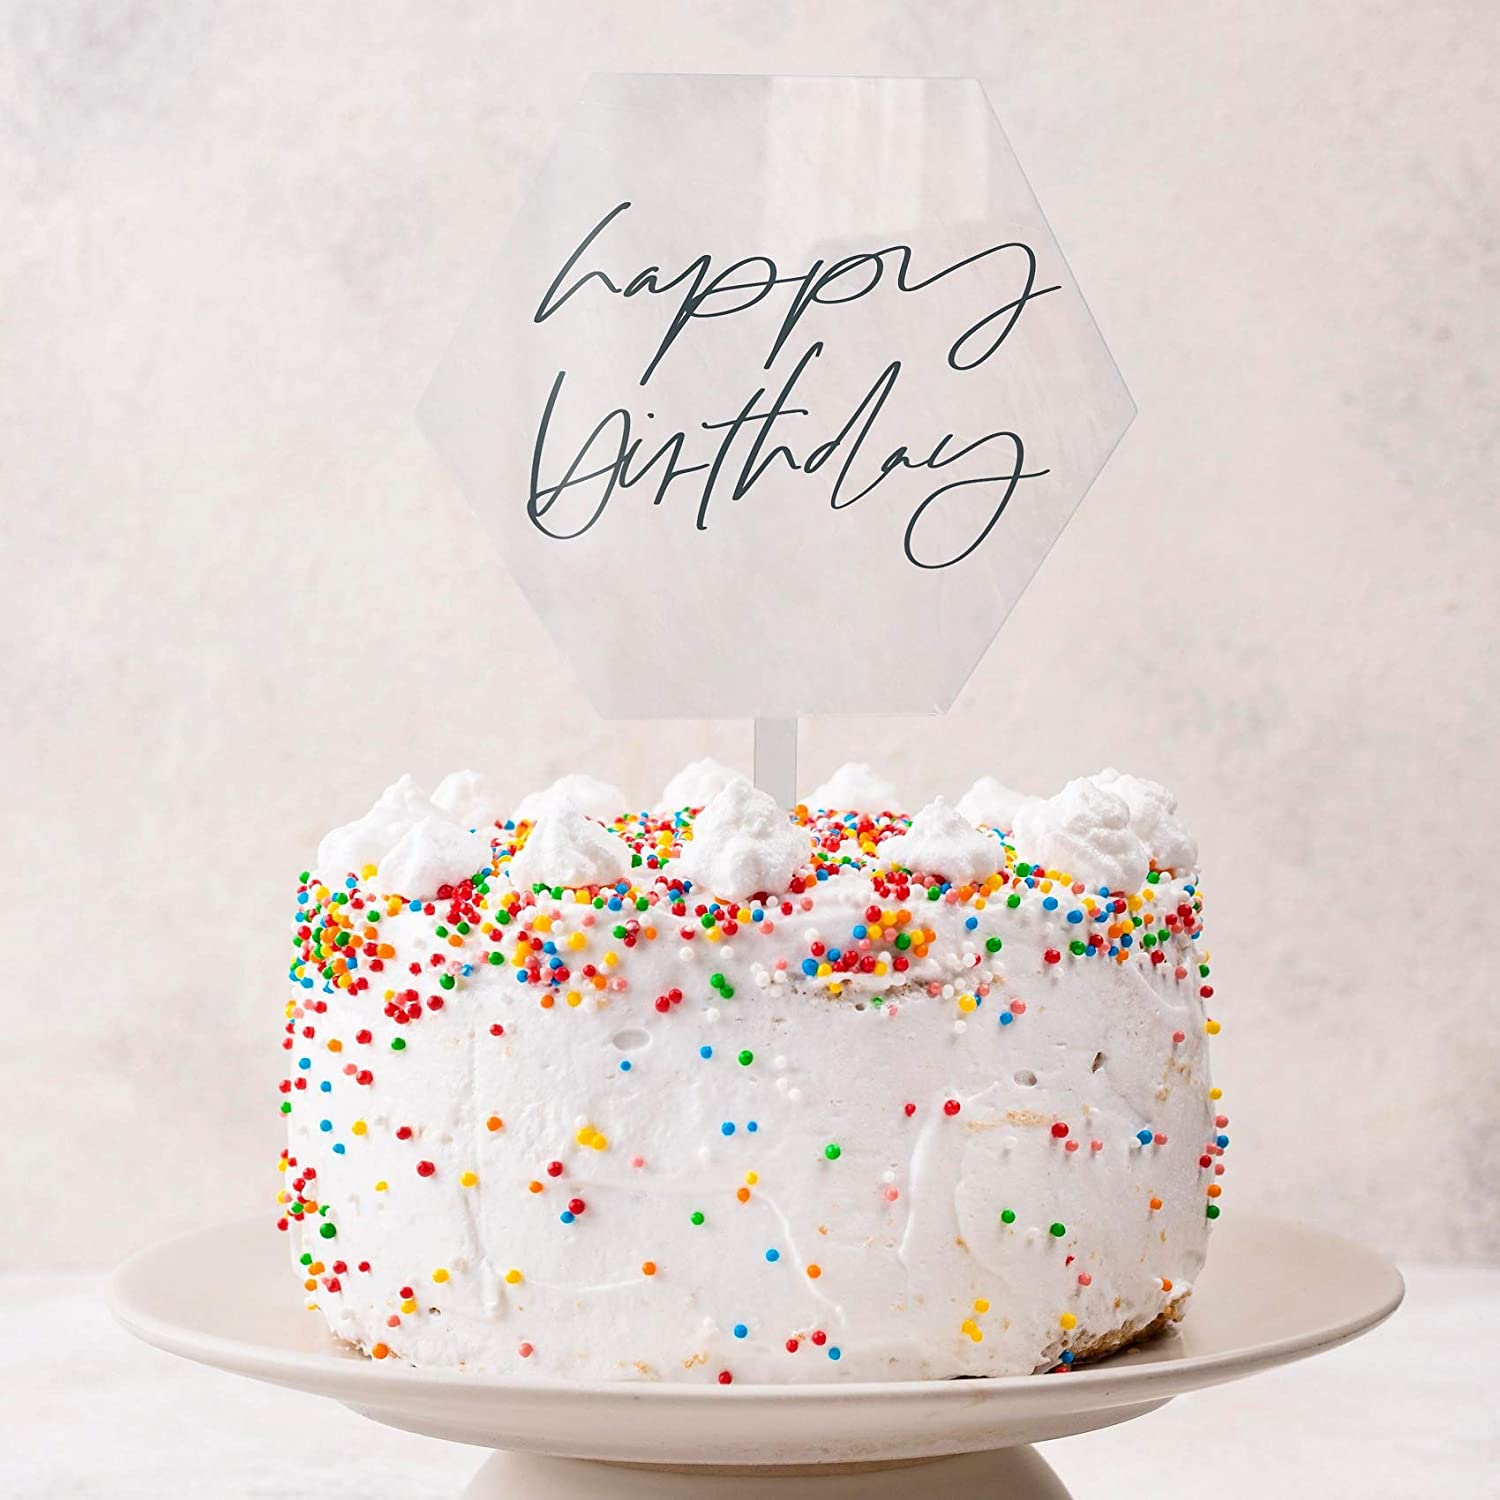 Details about  /Rainbow Happy Birthday Letters Cake Topper Lacer Creative Cup Dessert Topper